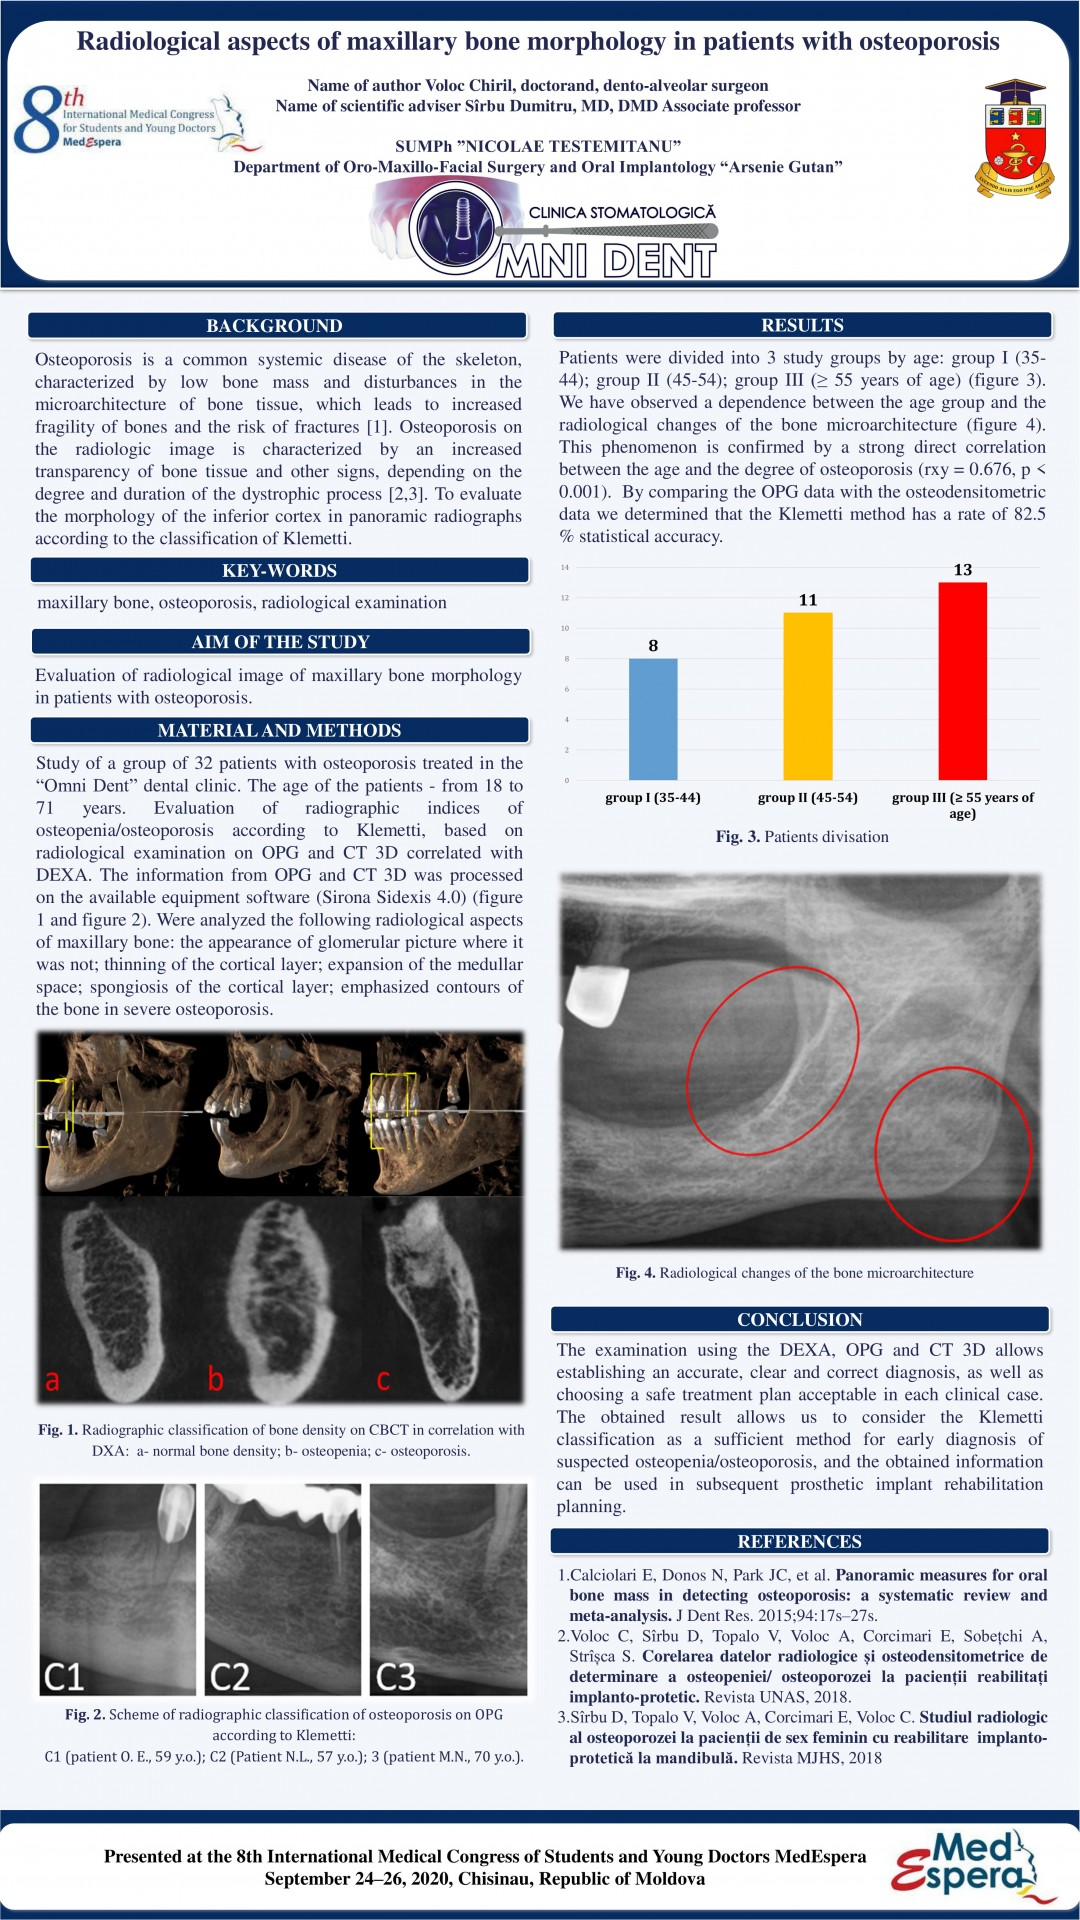 Radiological aspects of maxillary bone morphology in patients with osteoporosis